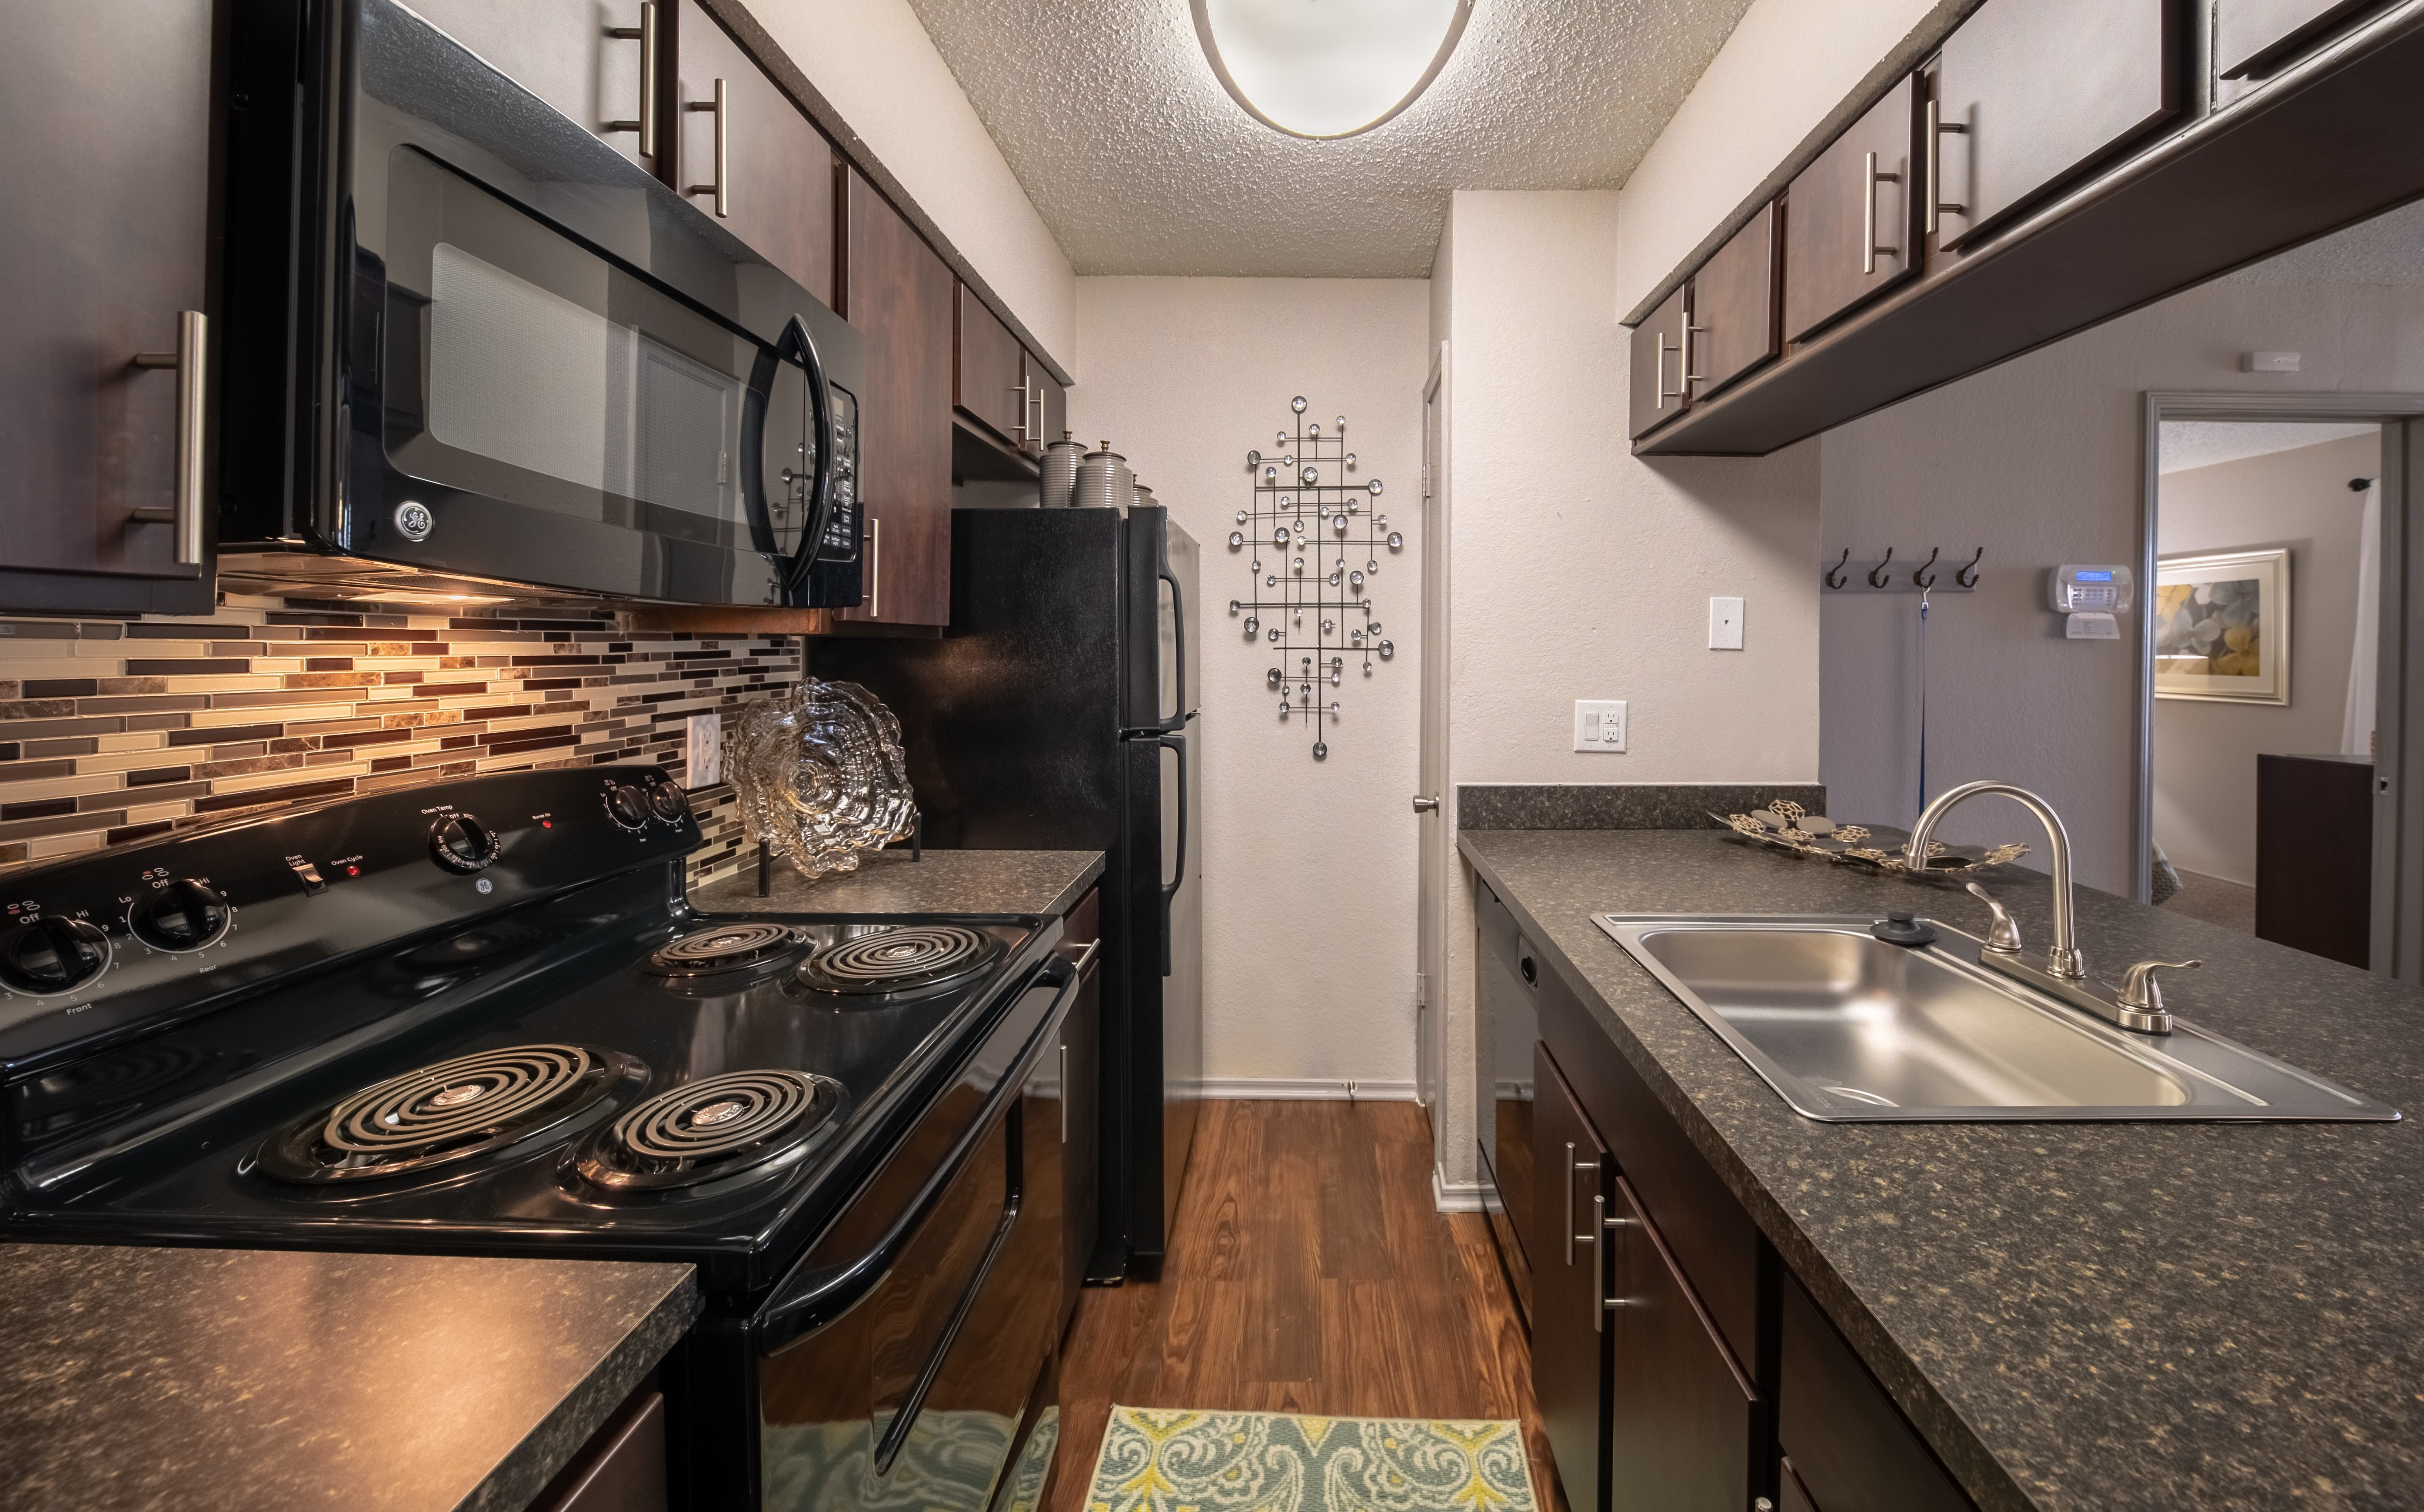 Best Affordable 1 2 Bedroom Apartments In Irving Tx With Pictures Original 1024 x 768